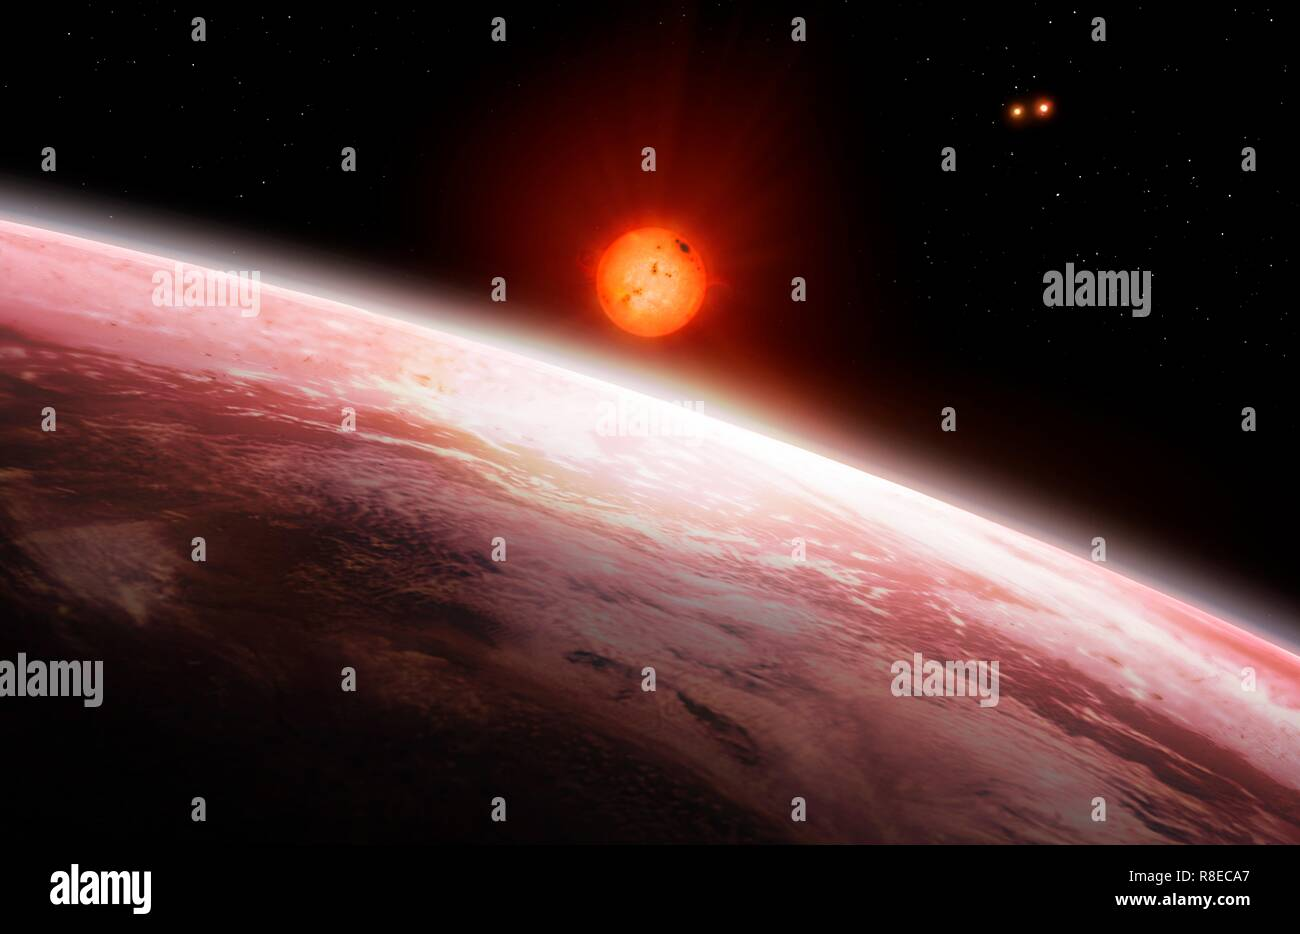 Illustration of the view from the innermost of the two exoplanets orbiting Gliese 667 C (largest star, a red dwarf) in the Gliese 667 system. The Gliese 667 A/B binary star system is to the upper left of Gliese 667 C. There are at least two planets in this multiple star system, called Gliese 667 Cb and Gliese 667 Cc, which lies around 24 light years from Earth, in the constellation Scorpius. Six planets in total have been proposed but four are contested as of 2018. - Stock Image